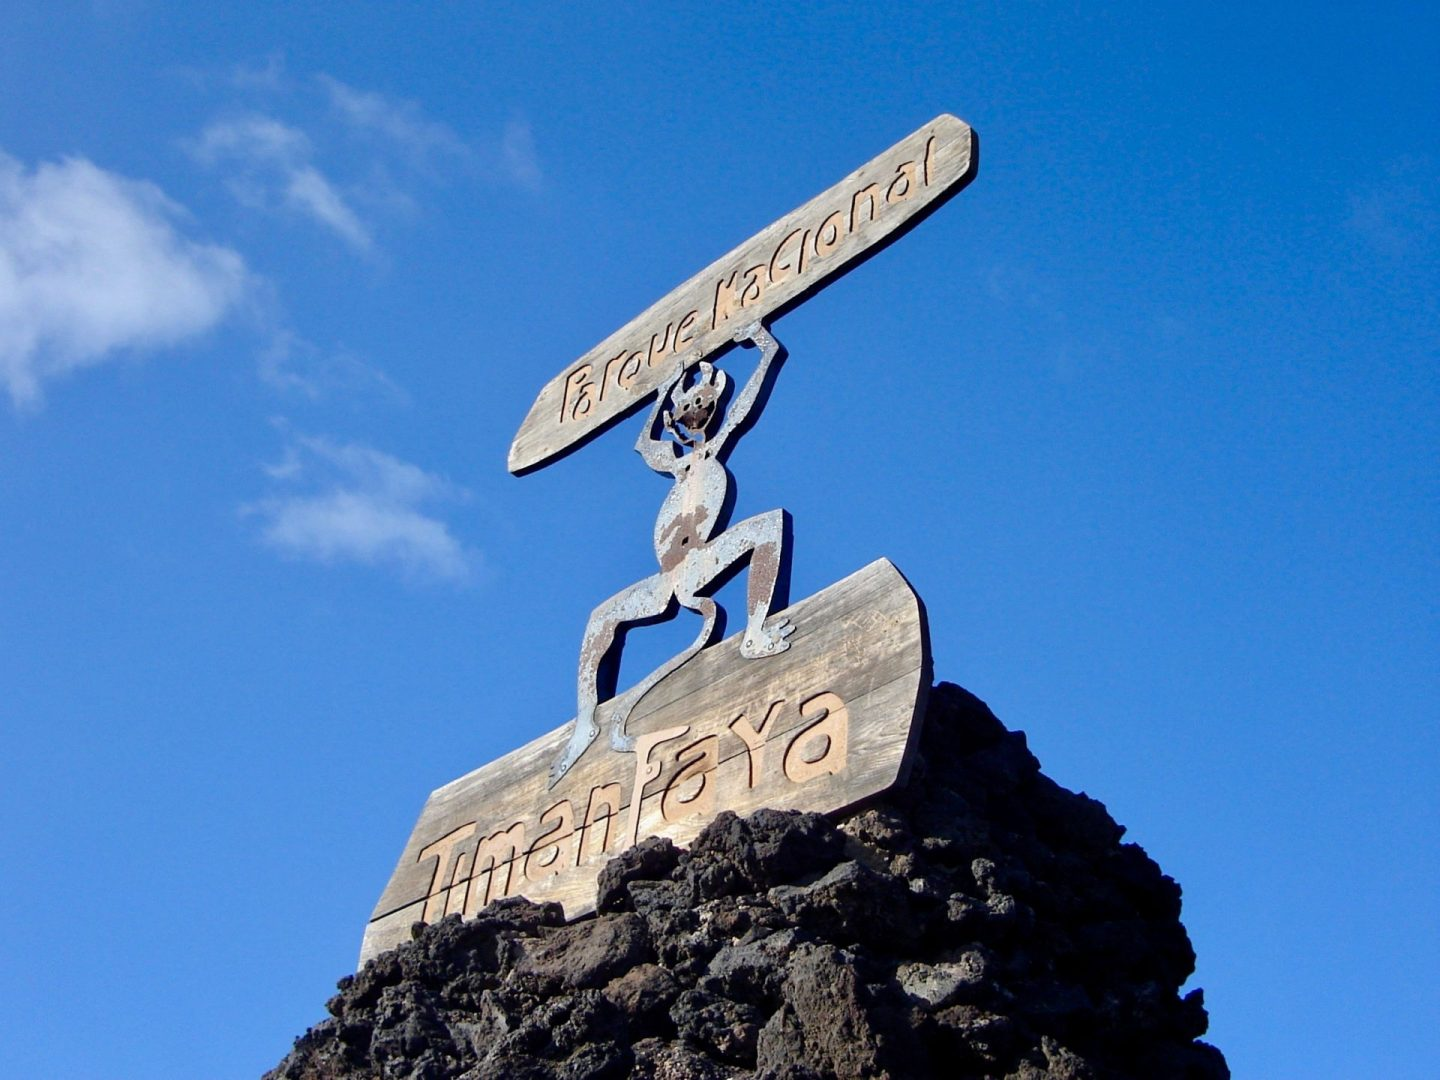 Things to do in Lanzarote: a wooden sign for Timanfaya national park, on top of black rock and against a clear blue sky